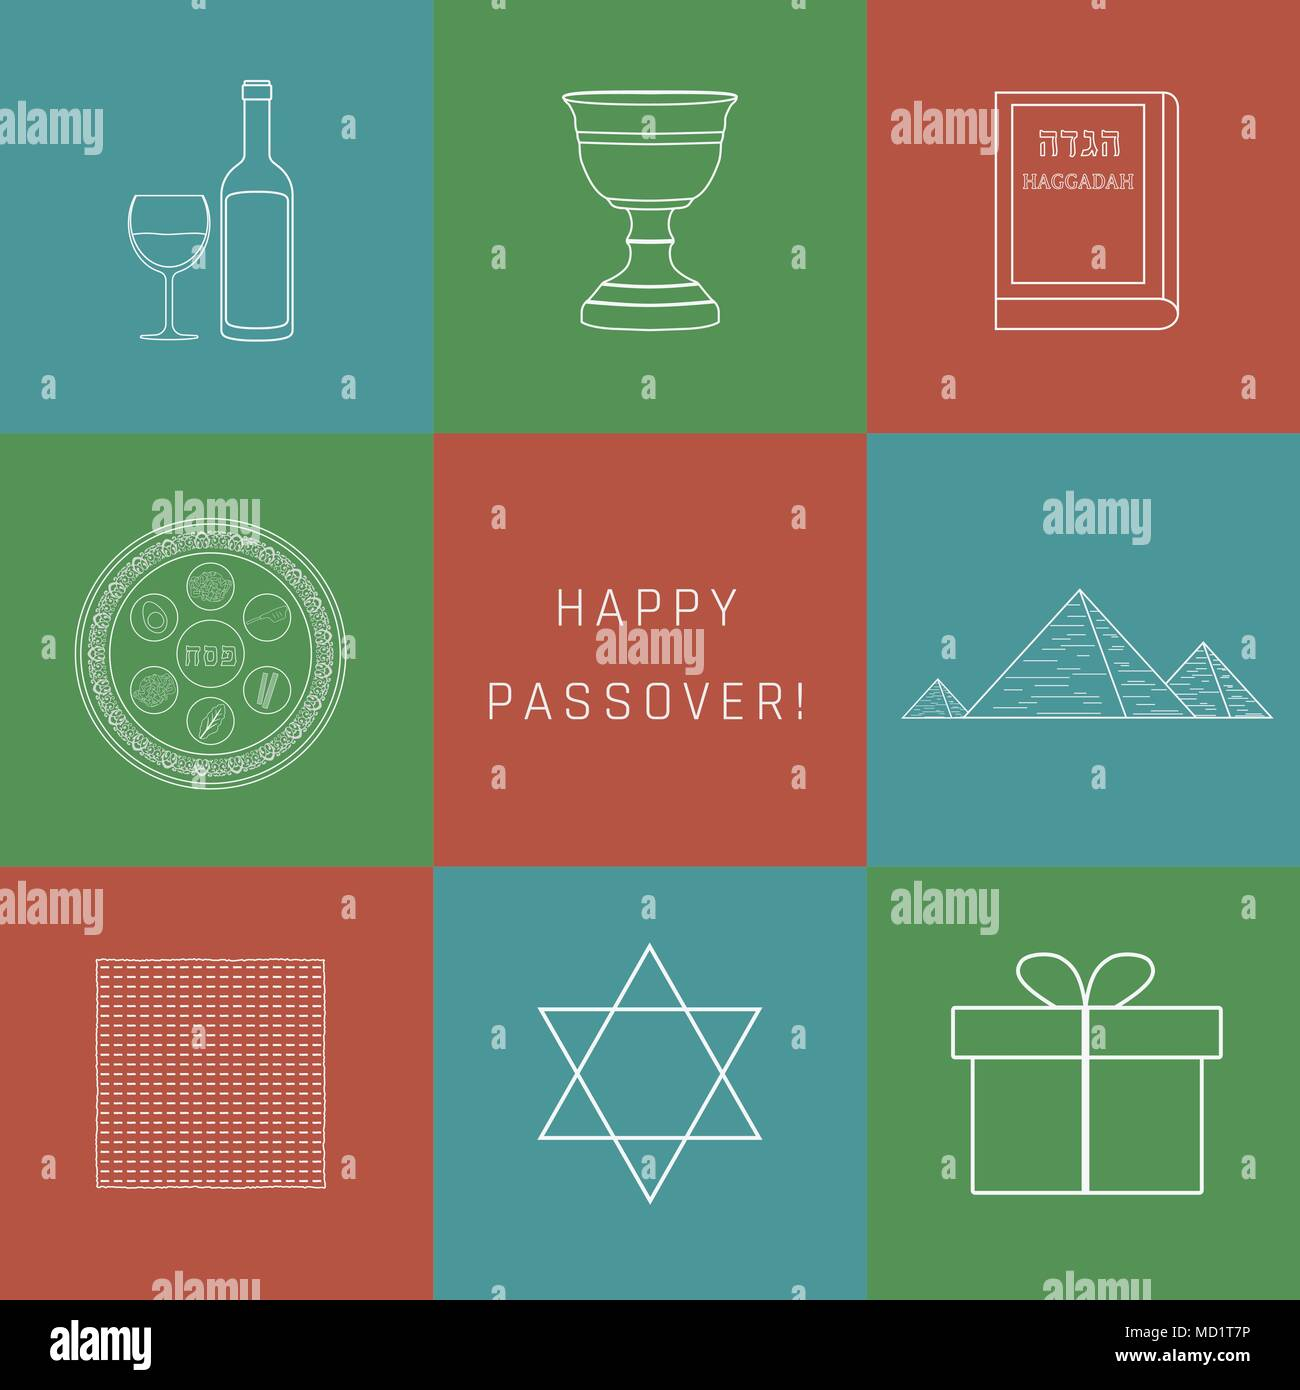 Passover Holiday Flat Design White Thin Line Icons Set With Text In